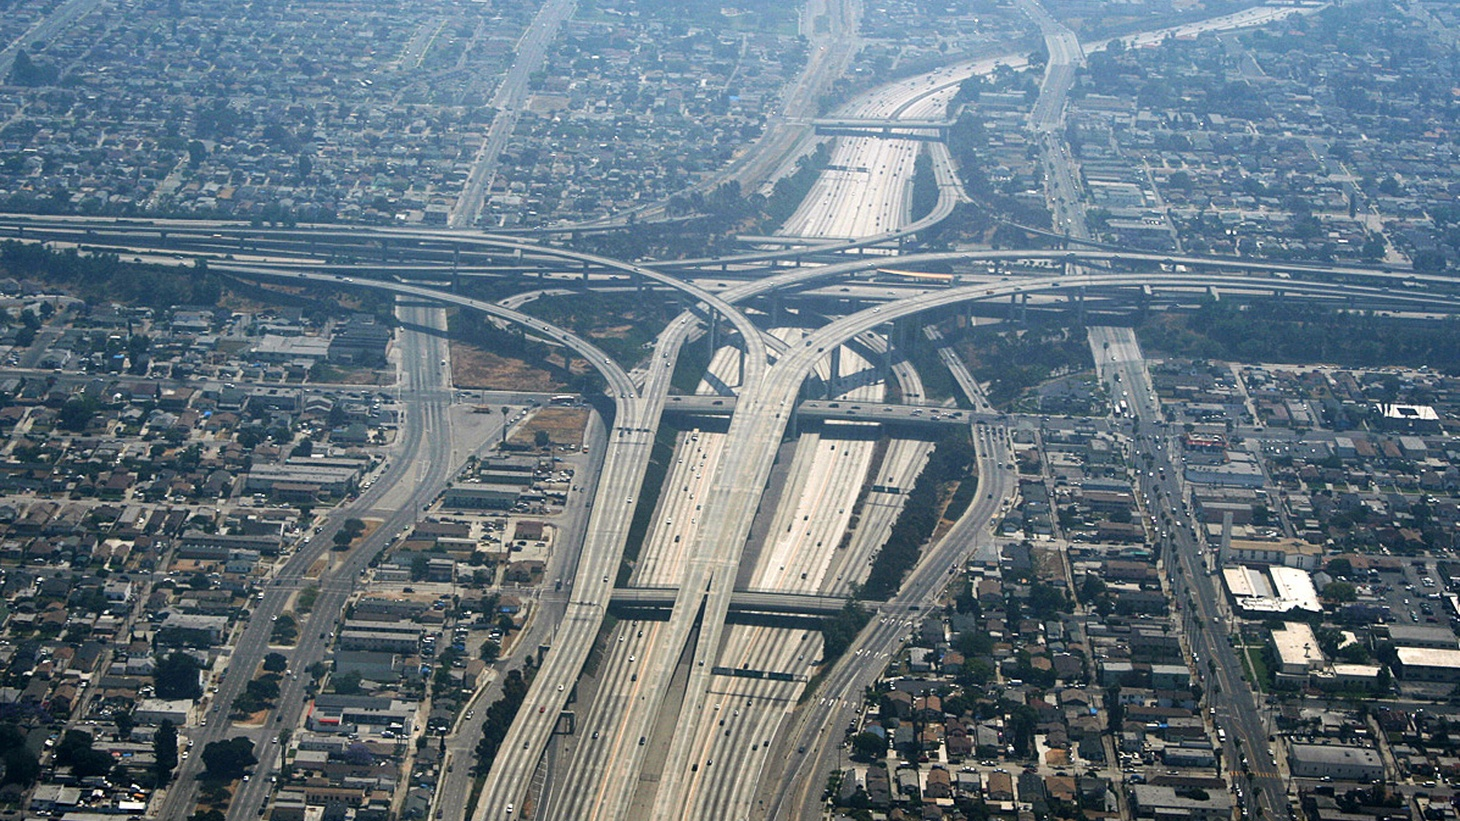 The 110 and 105 interchange in Los Angeles Photo courtesy of Rémi Jouan    President Trump has proposed rolling back CAFE standards, the gas mileage levels set for cars and light trucks in the US. Meanwhile, there's a surge of home construction dangerously close to freeways, where air pollutants from car tailpipe emissions contribute to higher…